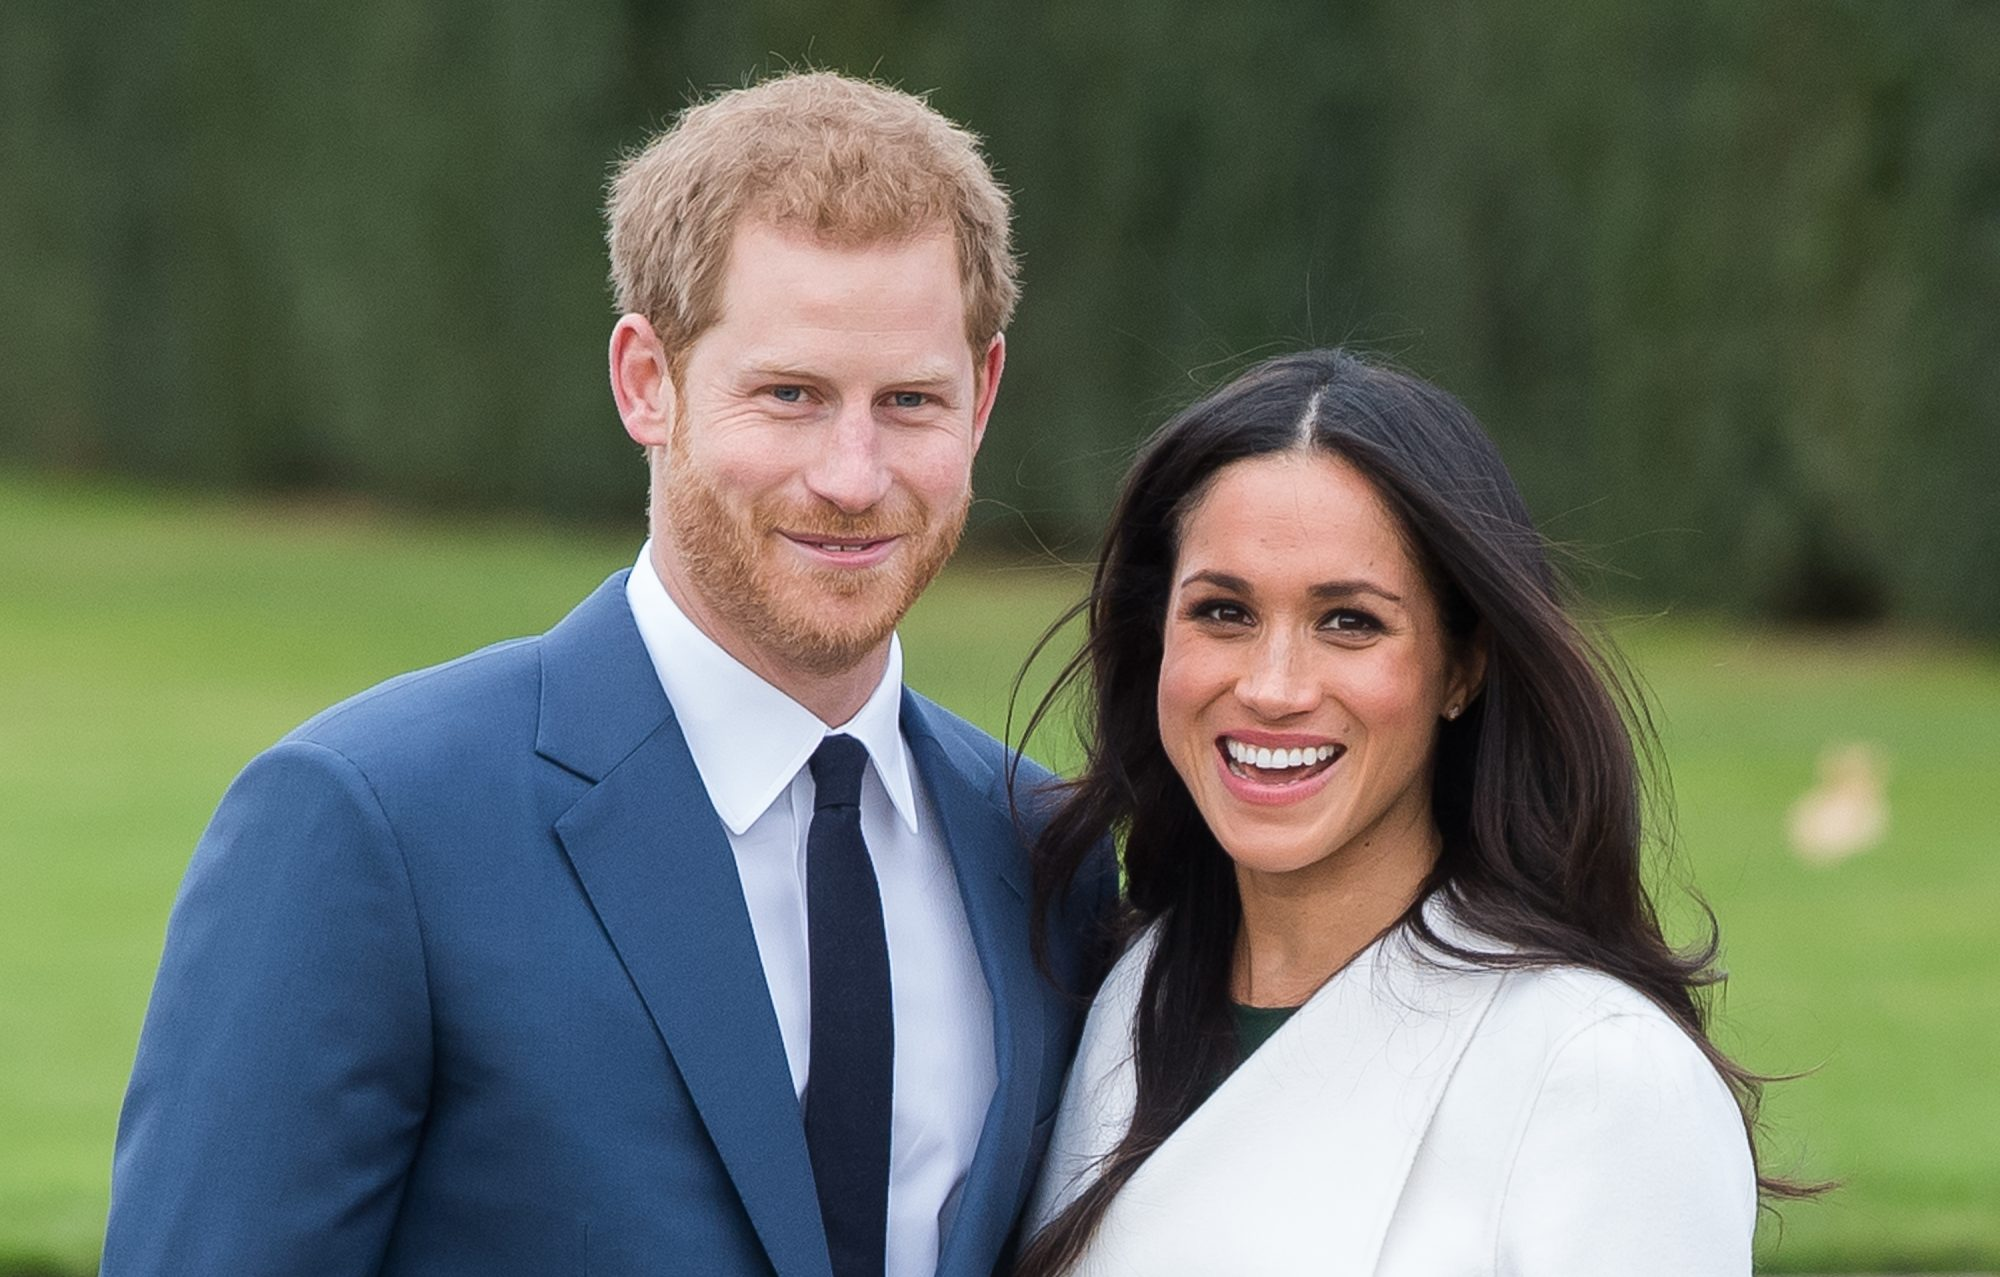 4 Relationship Tips You Should Steal from Prince Harry and Meghan Markle